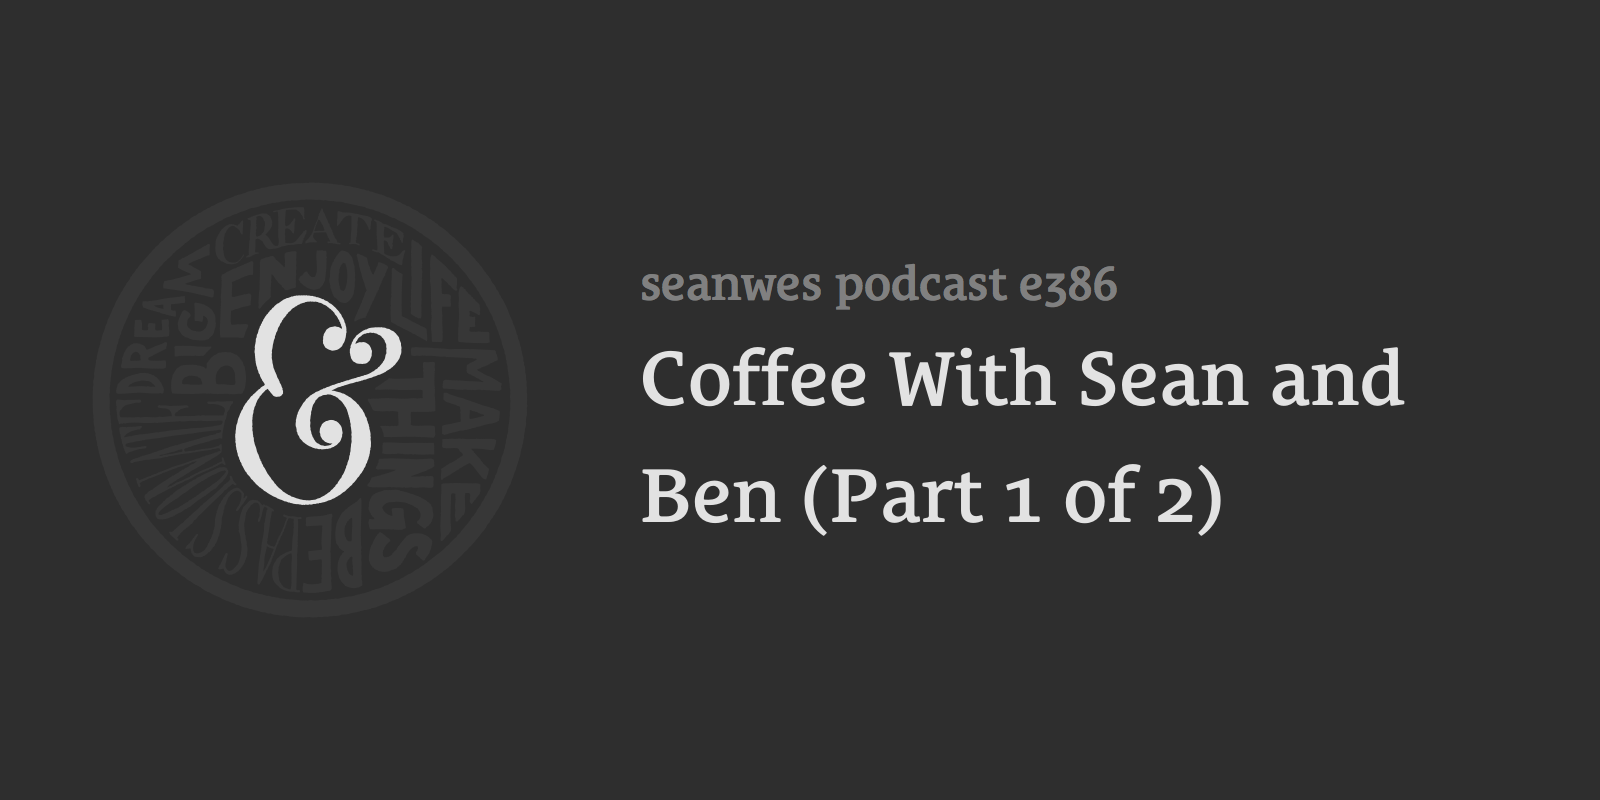 Coffee With Sean and Ben (Part 1 of 2)